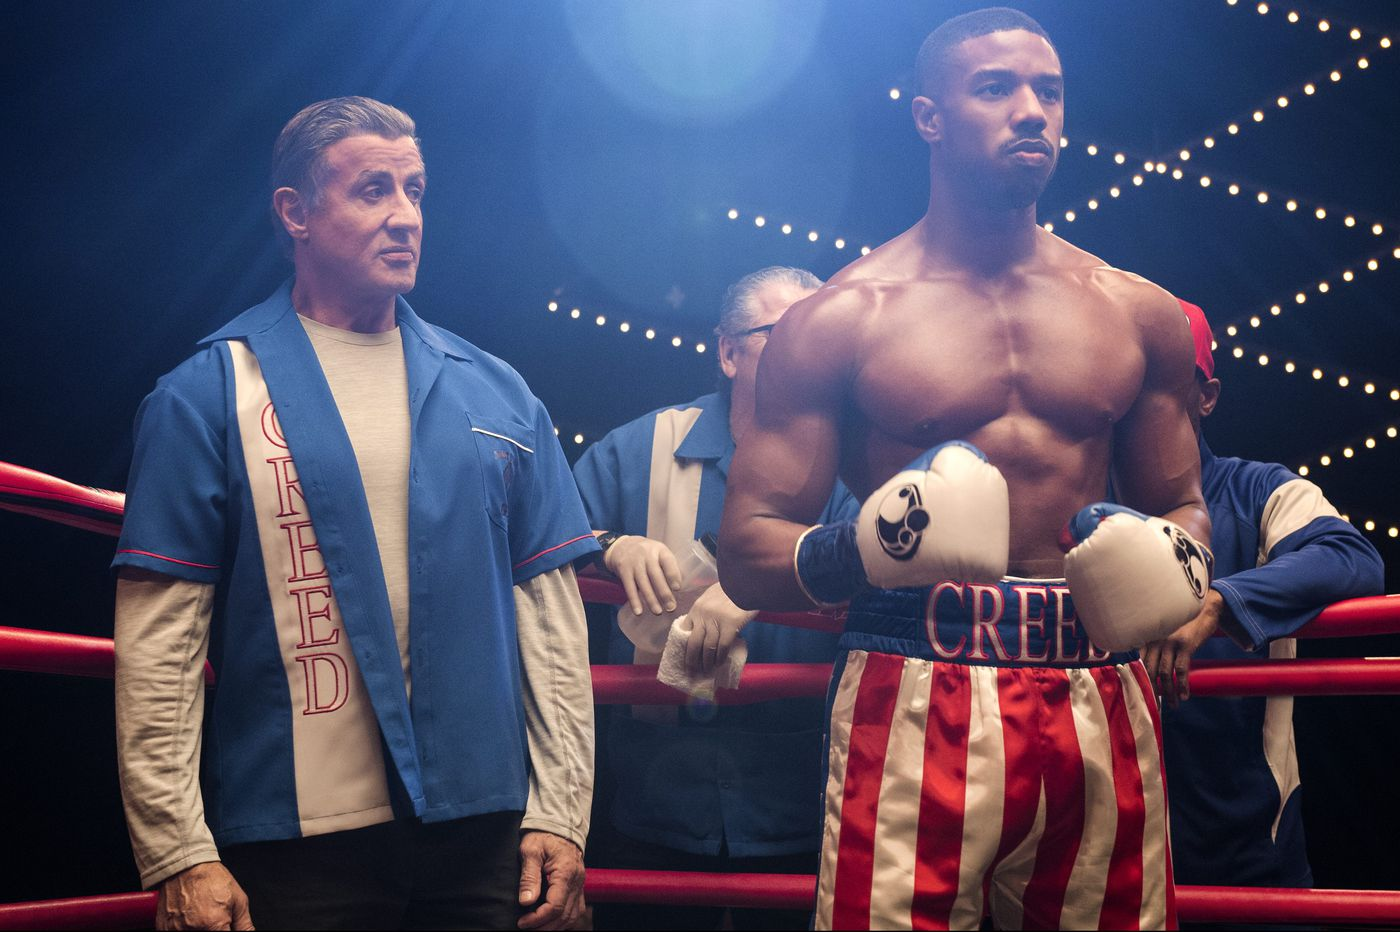 'Creed II' cast surprise audience in South Philly